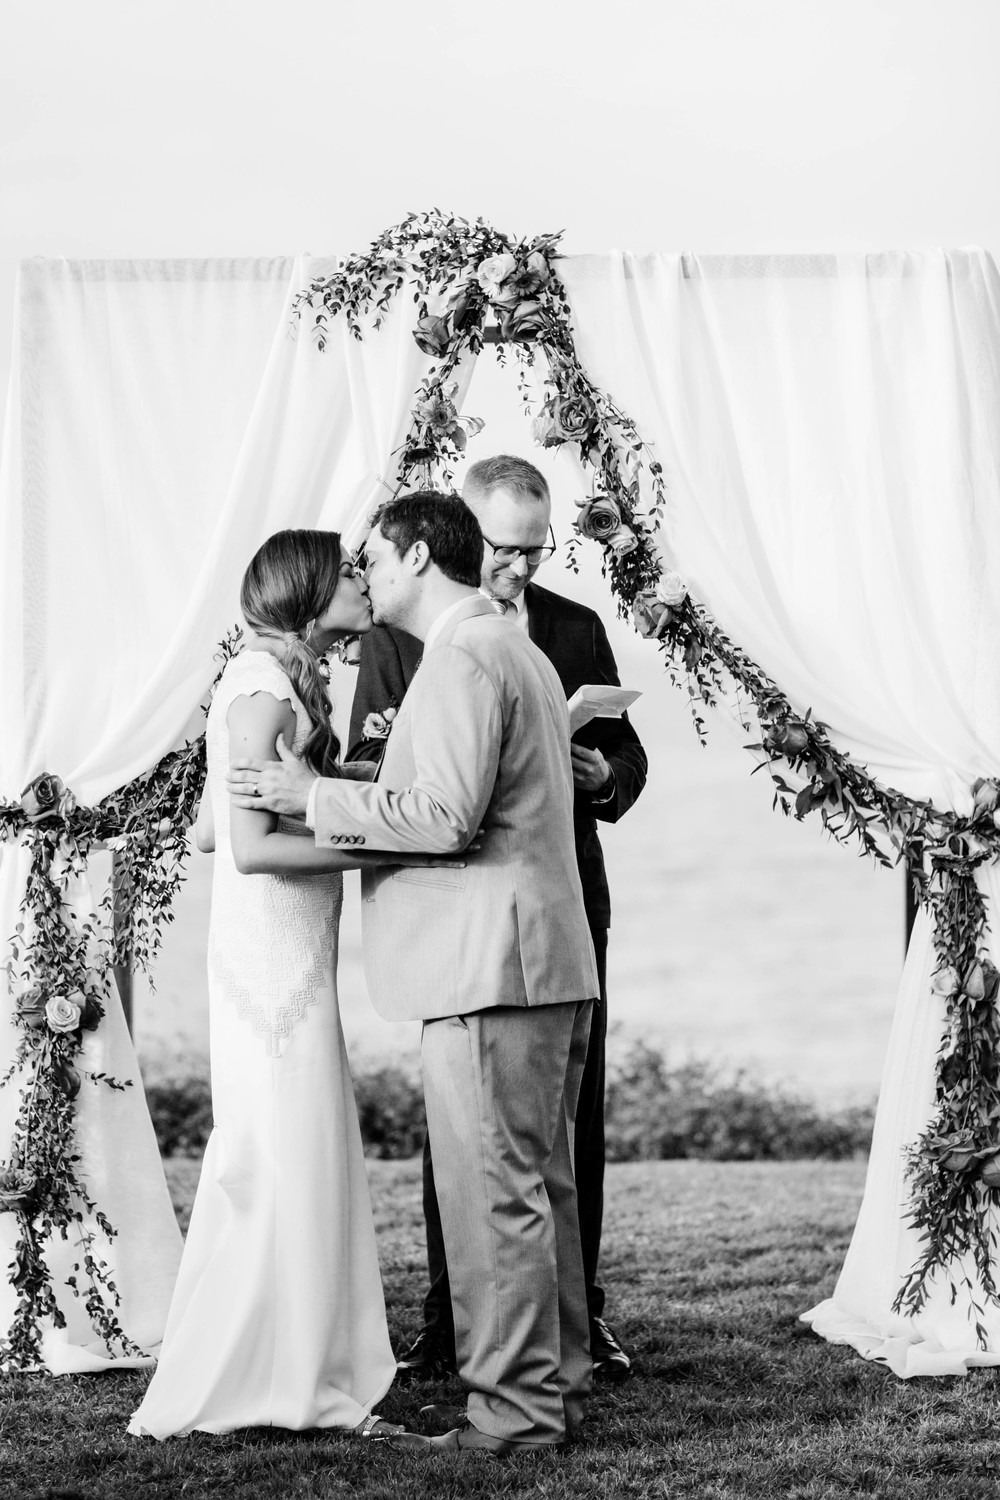 20160206_Diana+Dave_sayulitawedding_mexico_wedding-056.jpg